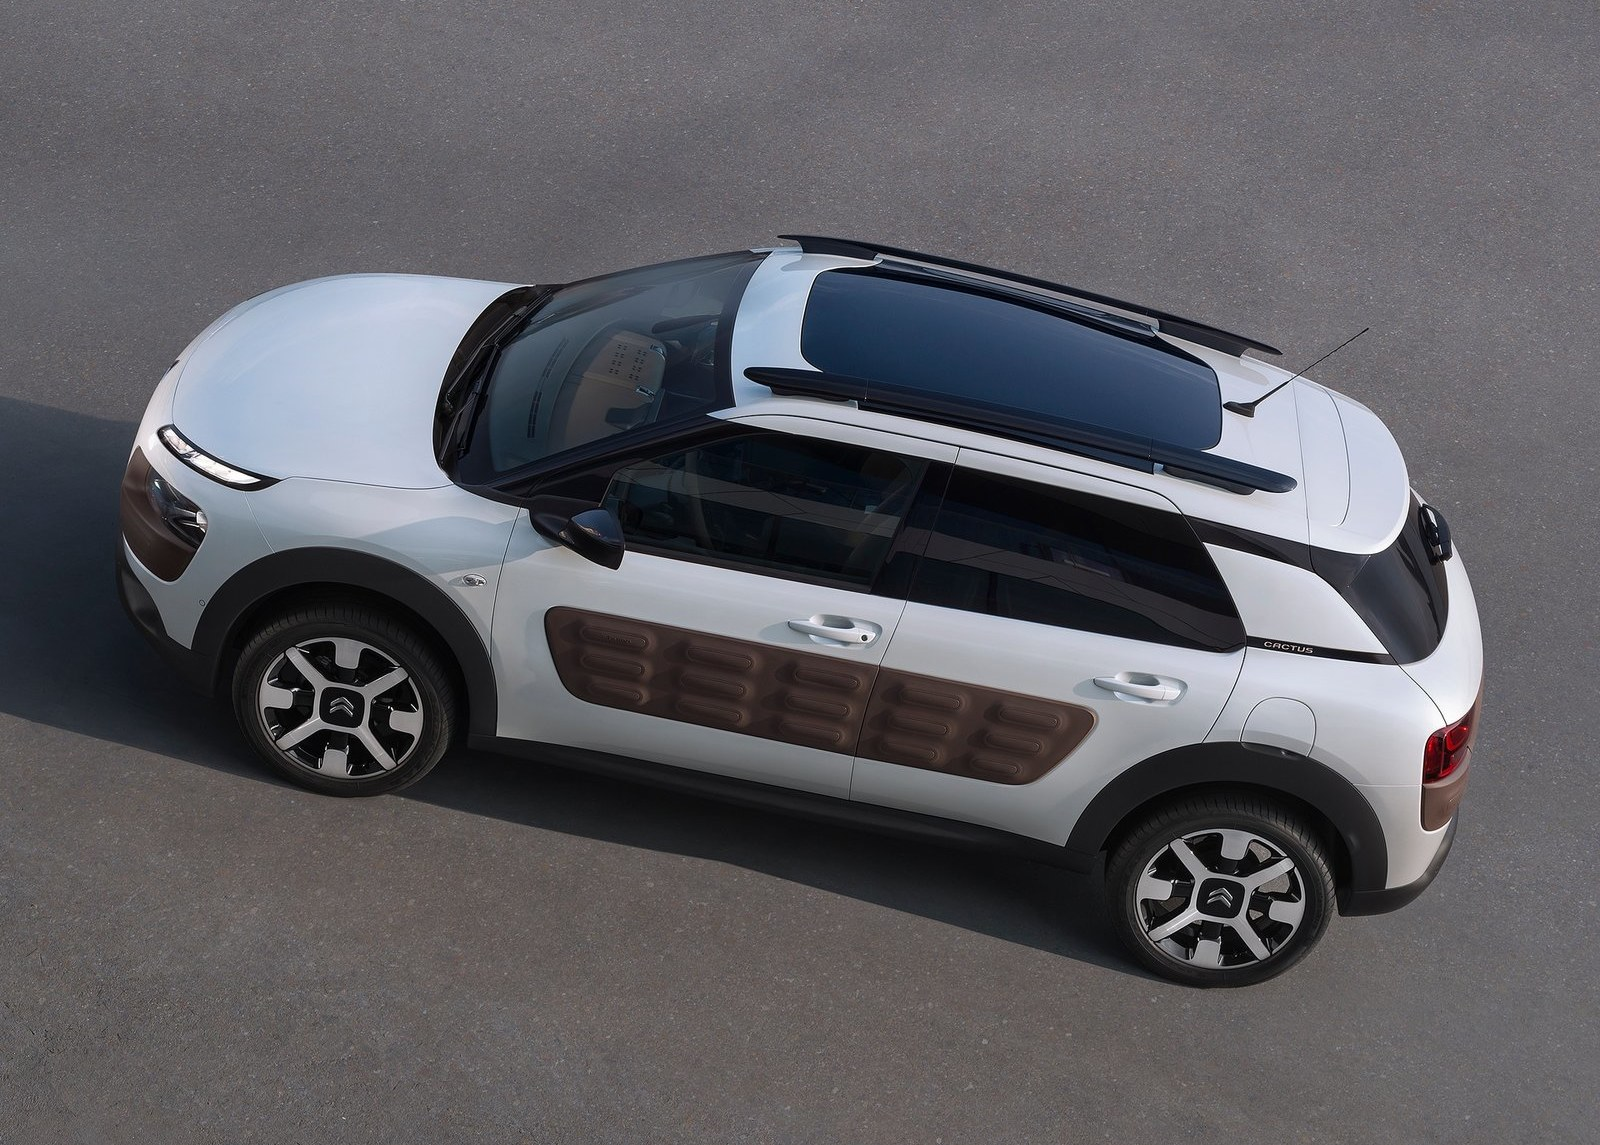 2015 Citroen C4 Cactus Roof View